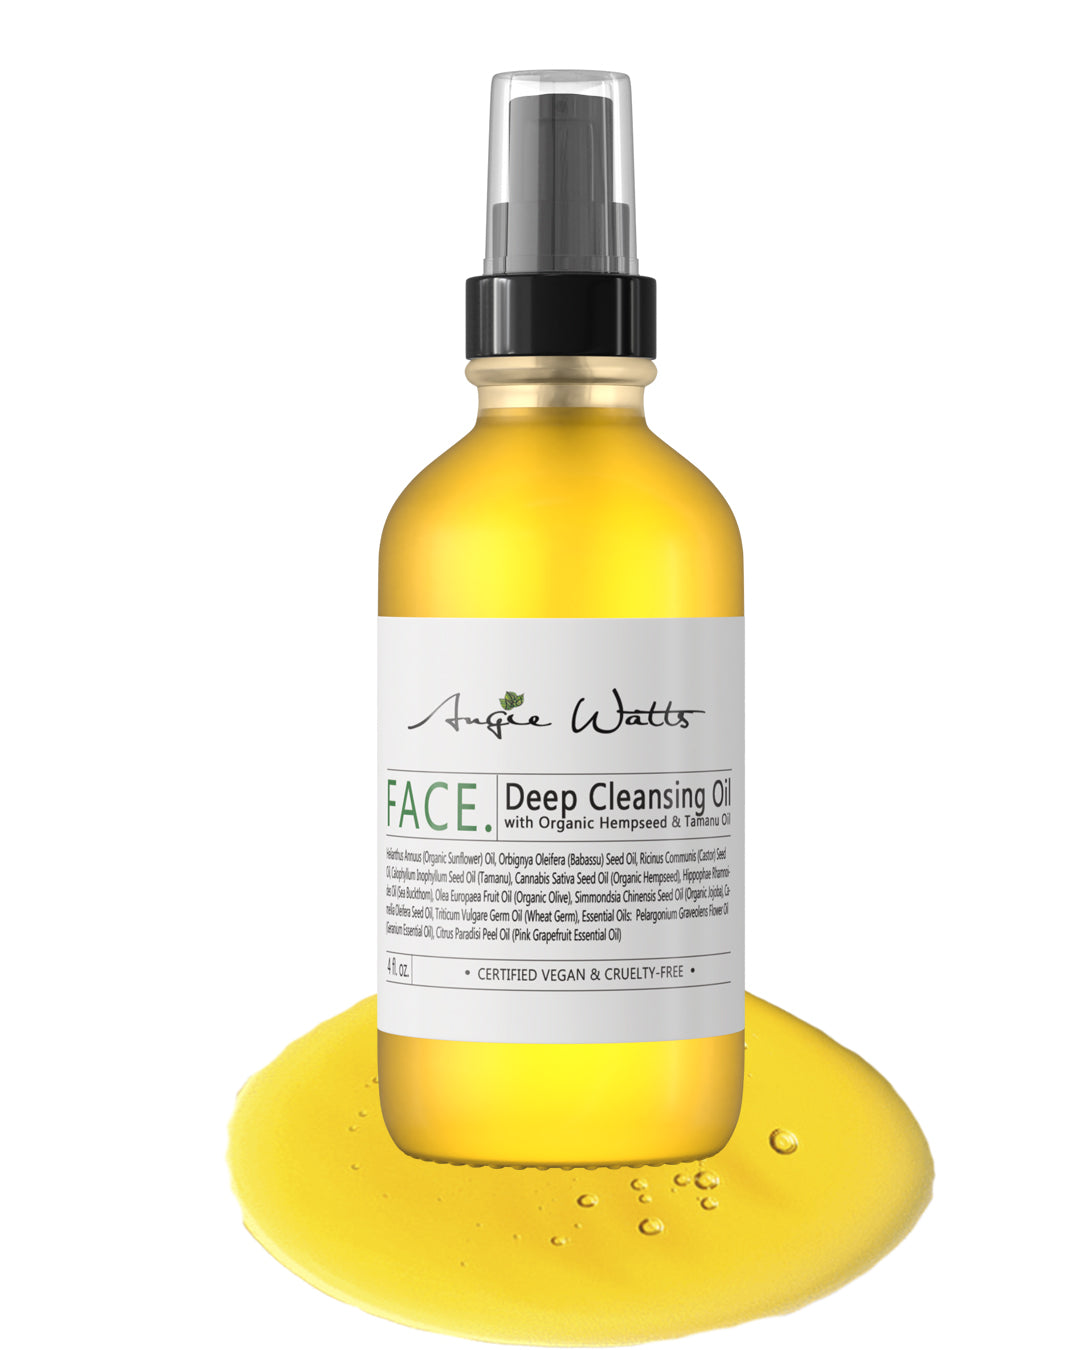 FACE. Deep Cleansing Oil, 4oz - Angie Watts